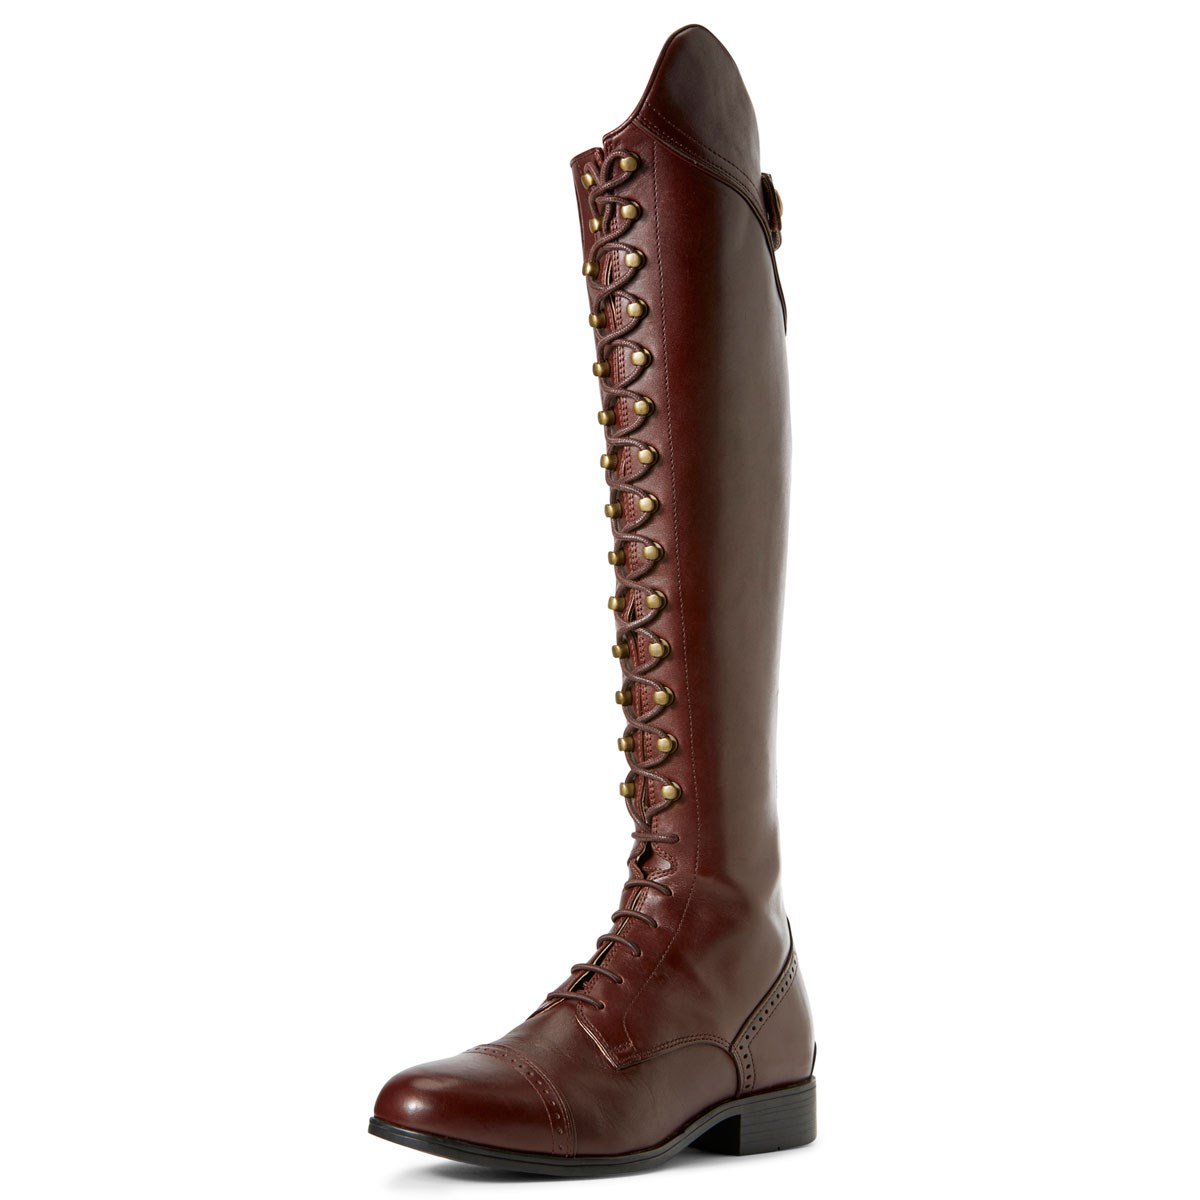 best choice famous brand superior quality Ariat Capriole Ladies Tall Riding Boots - Mahogany